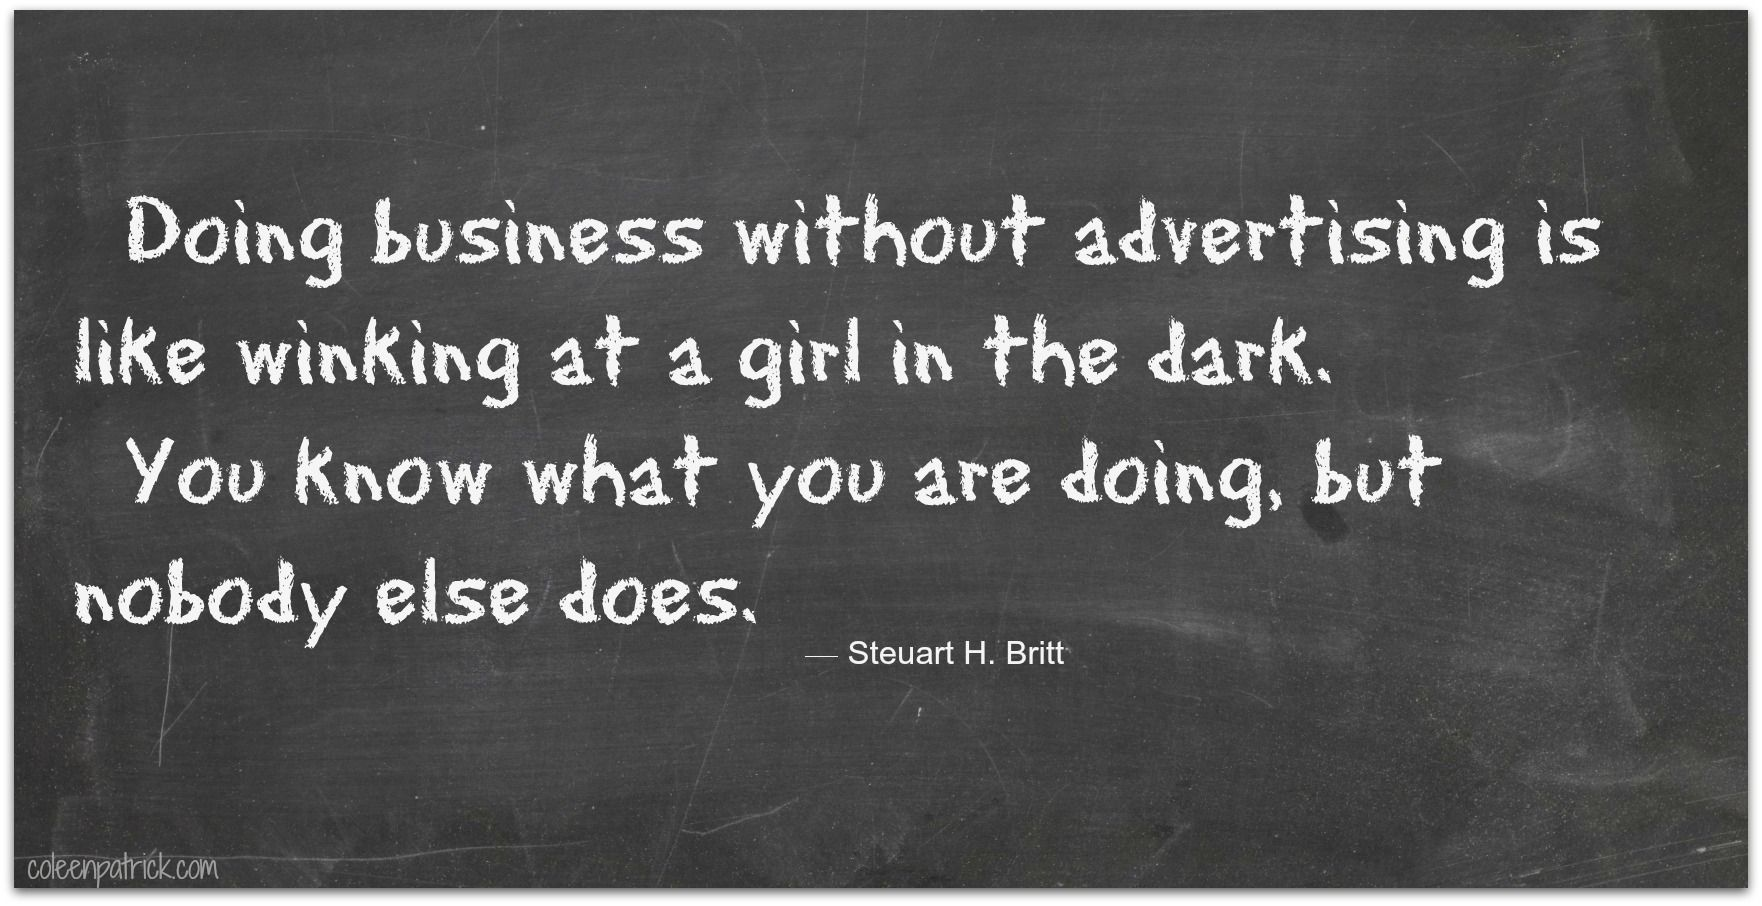 doing business without advertising is like winking at a